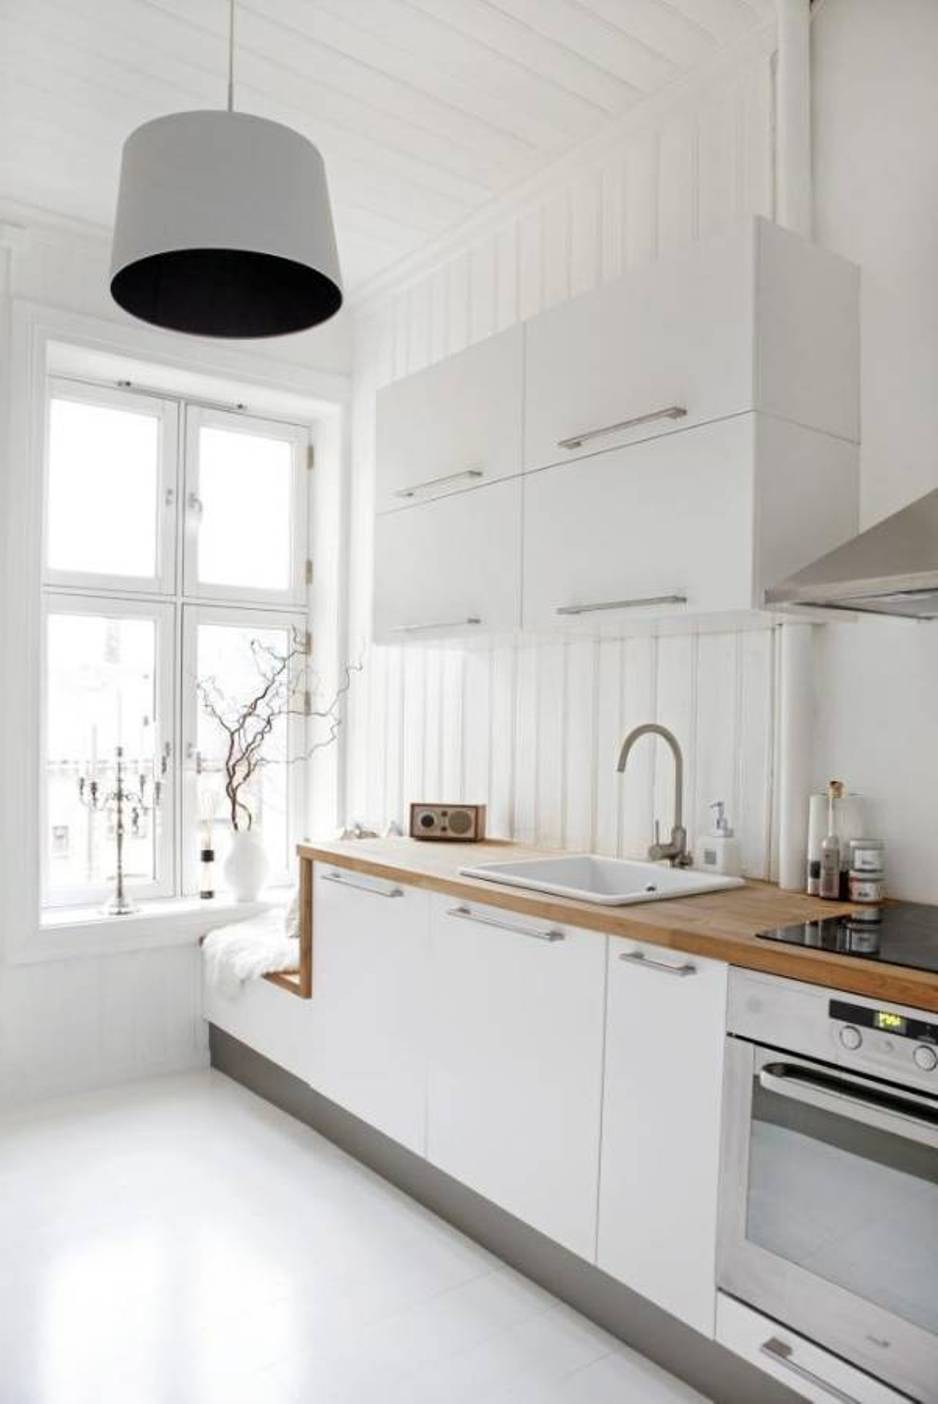 10 amazing scandinavian kitchen interior design ideas Scandinavian kitchen designs